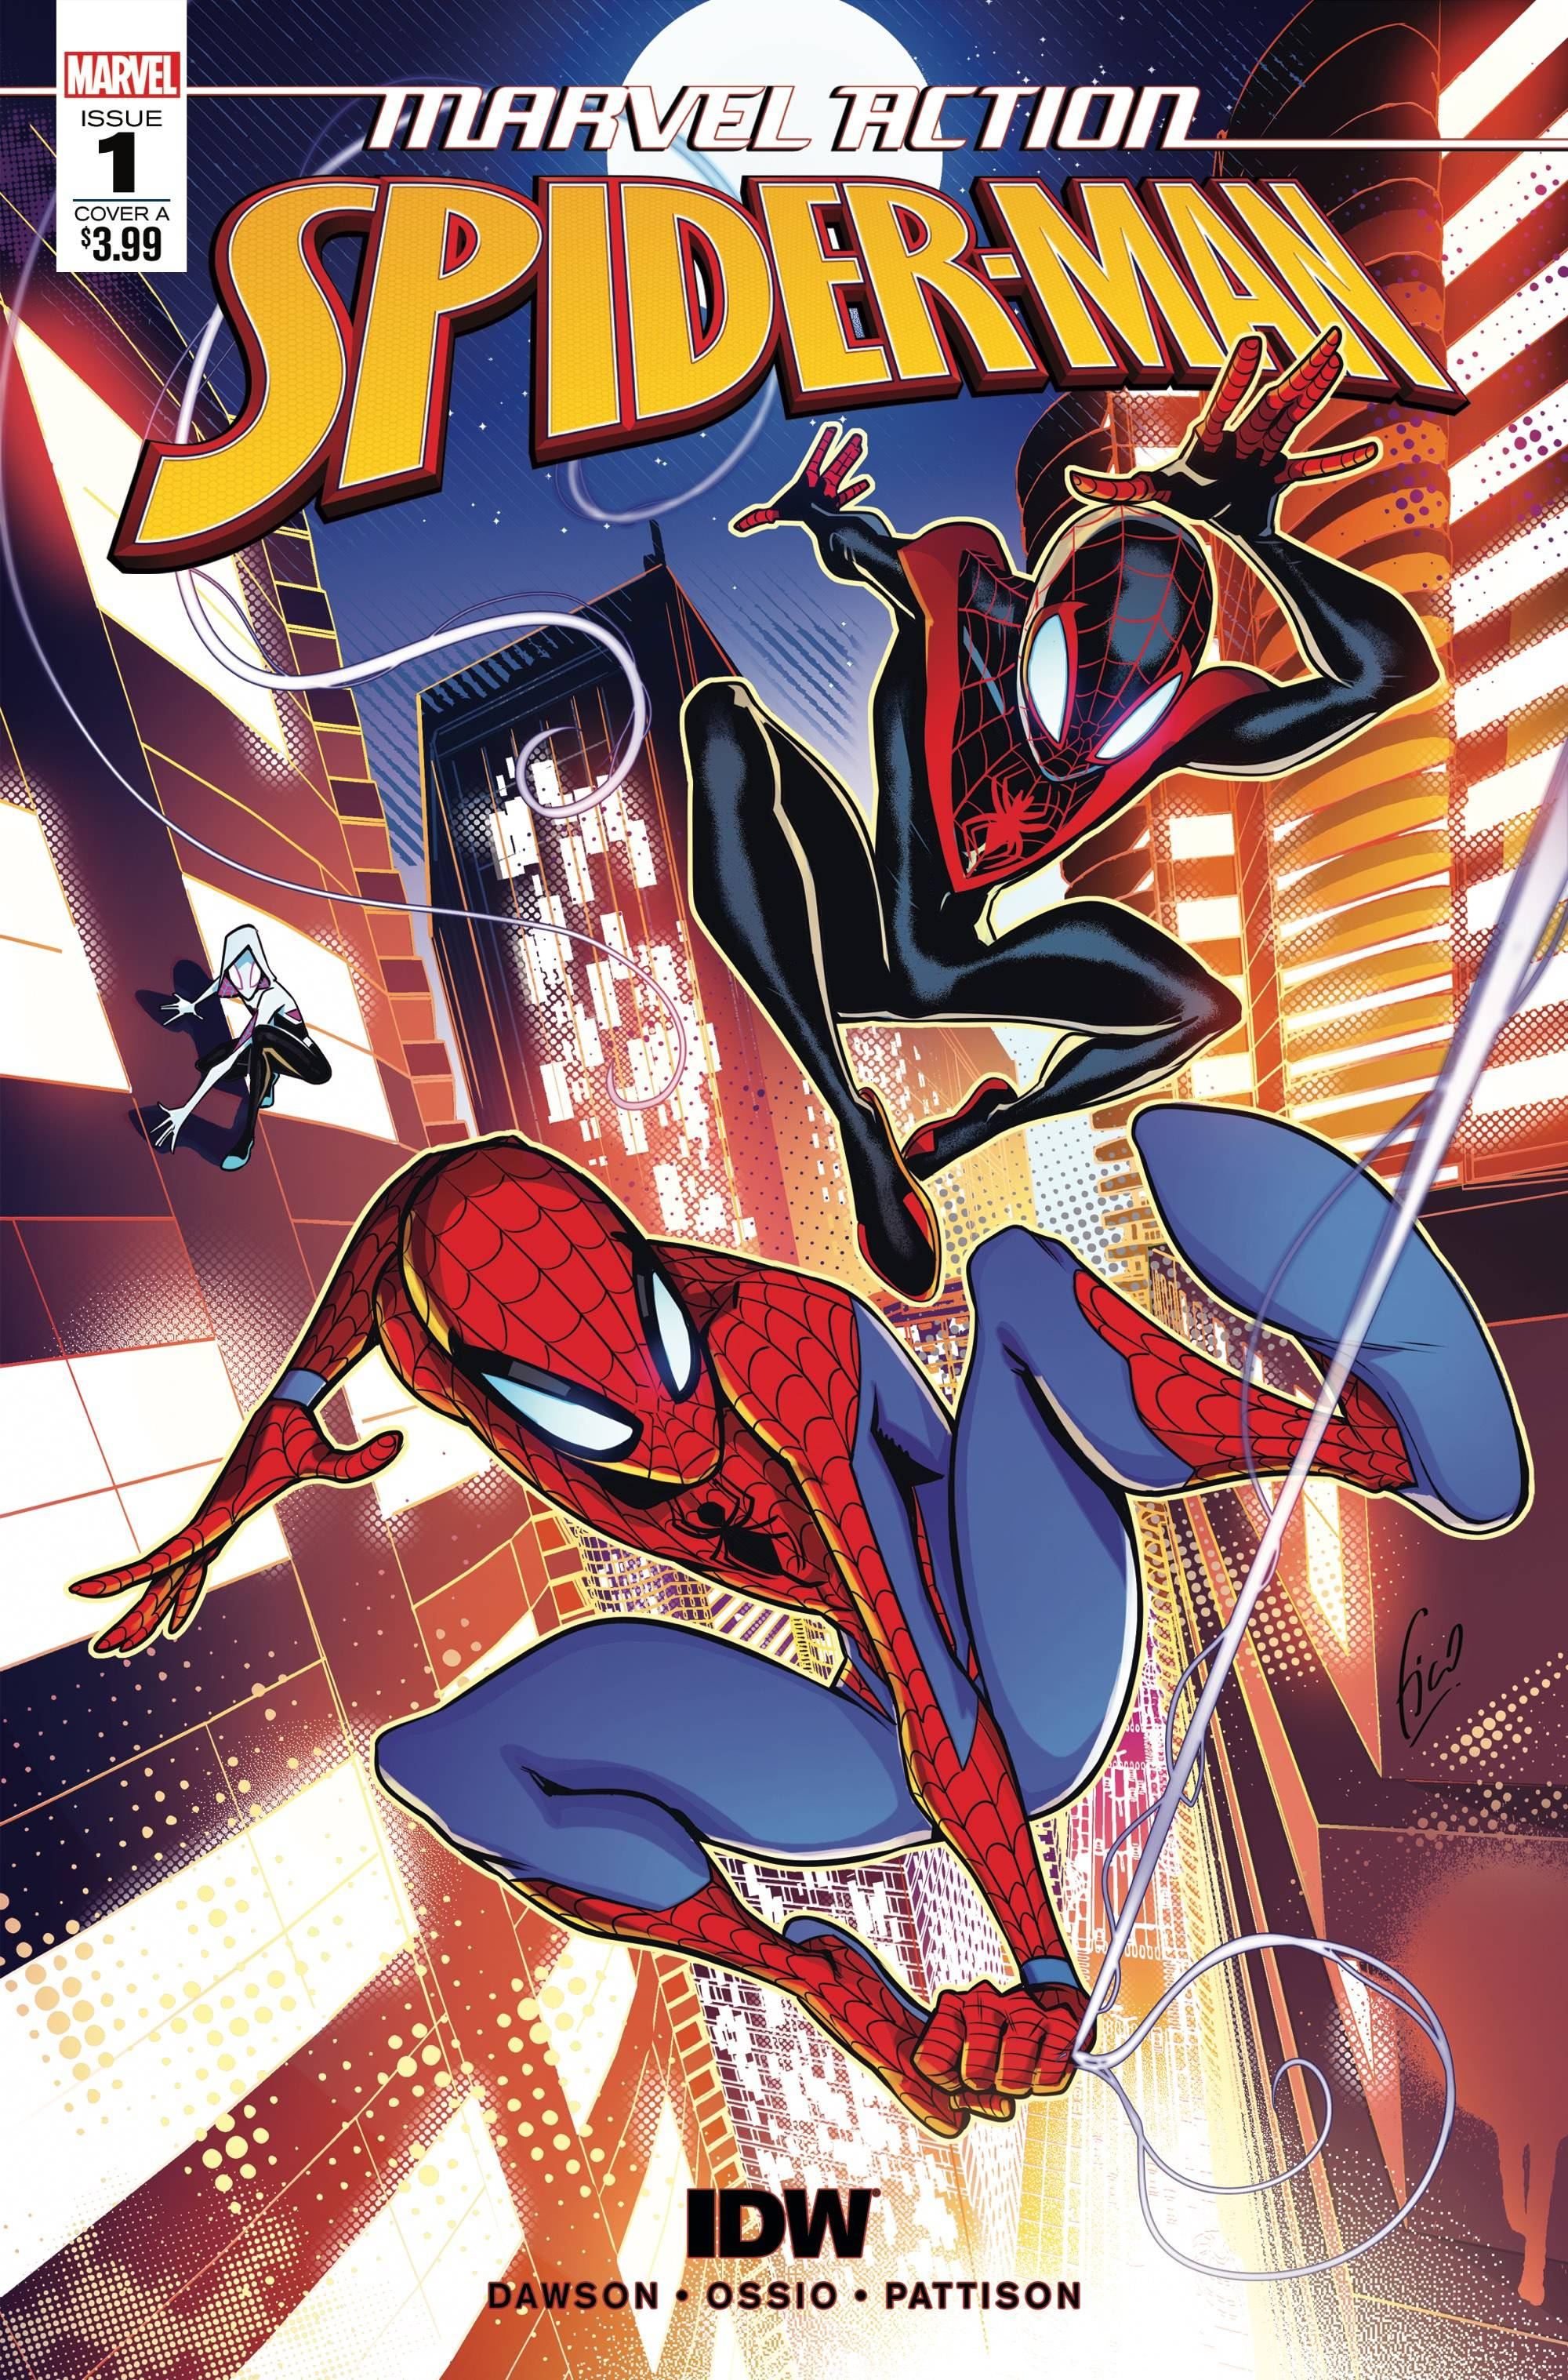 Marvel Action Spider-Man (IDW) #1 (2018)